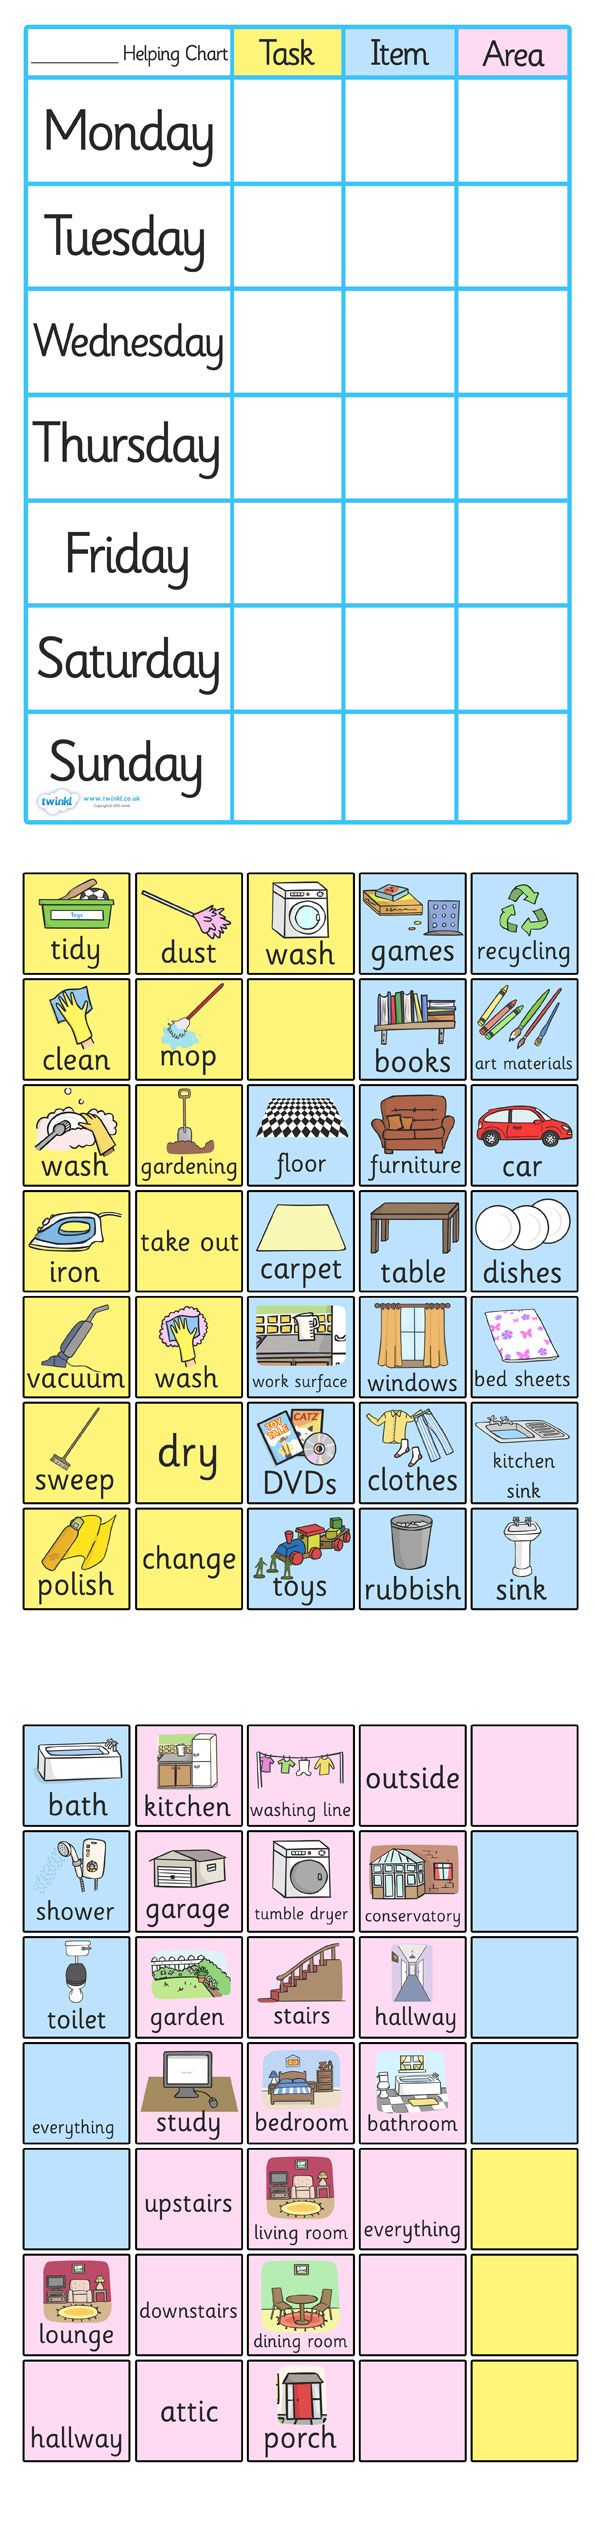 Twinkl Resources >> Chore Chart For Home  >> Classroom printables for Pre-School, Kindergarten, Elementary School and beyond! Rewards, Progress Charts, Class Management